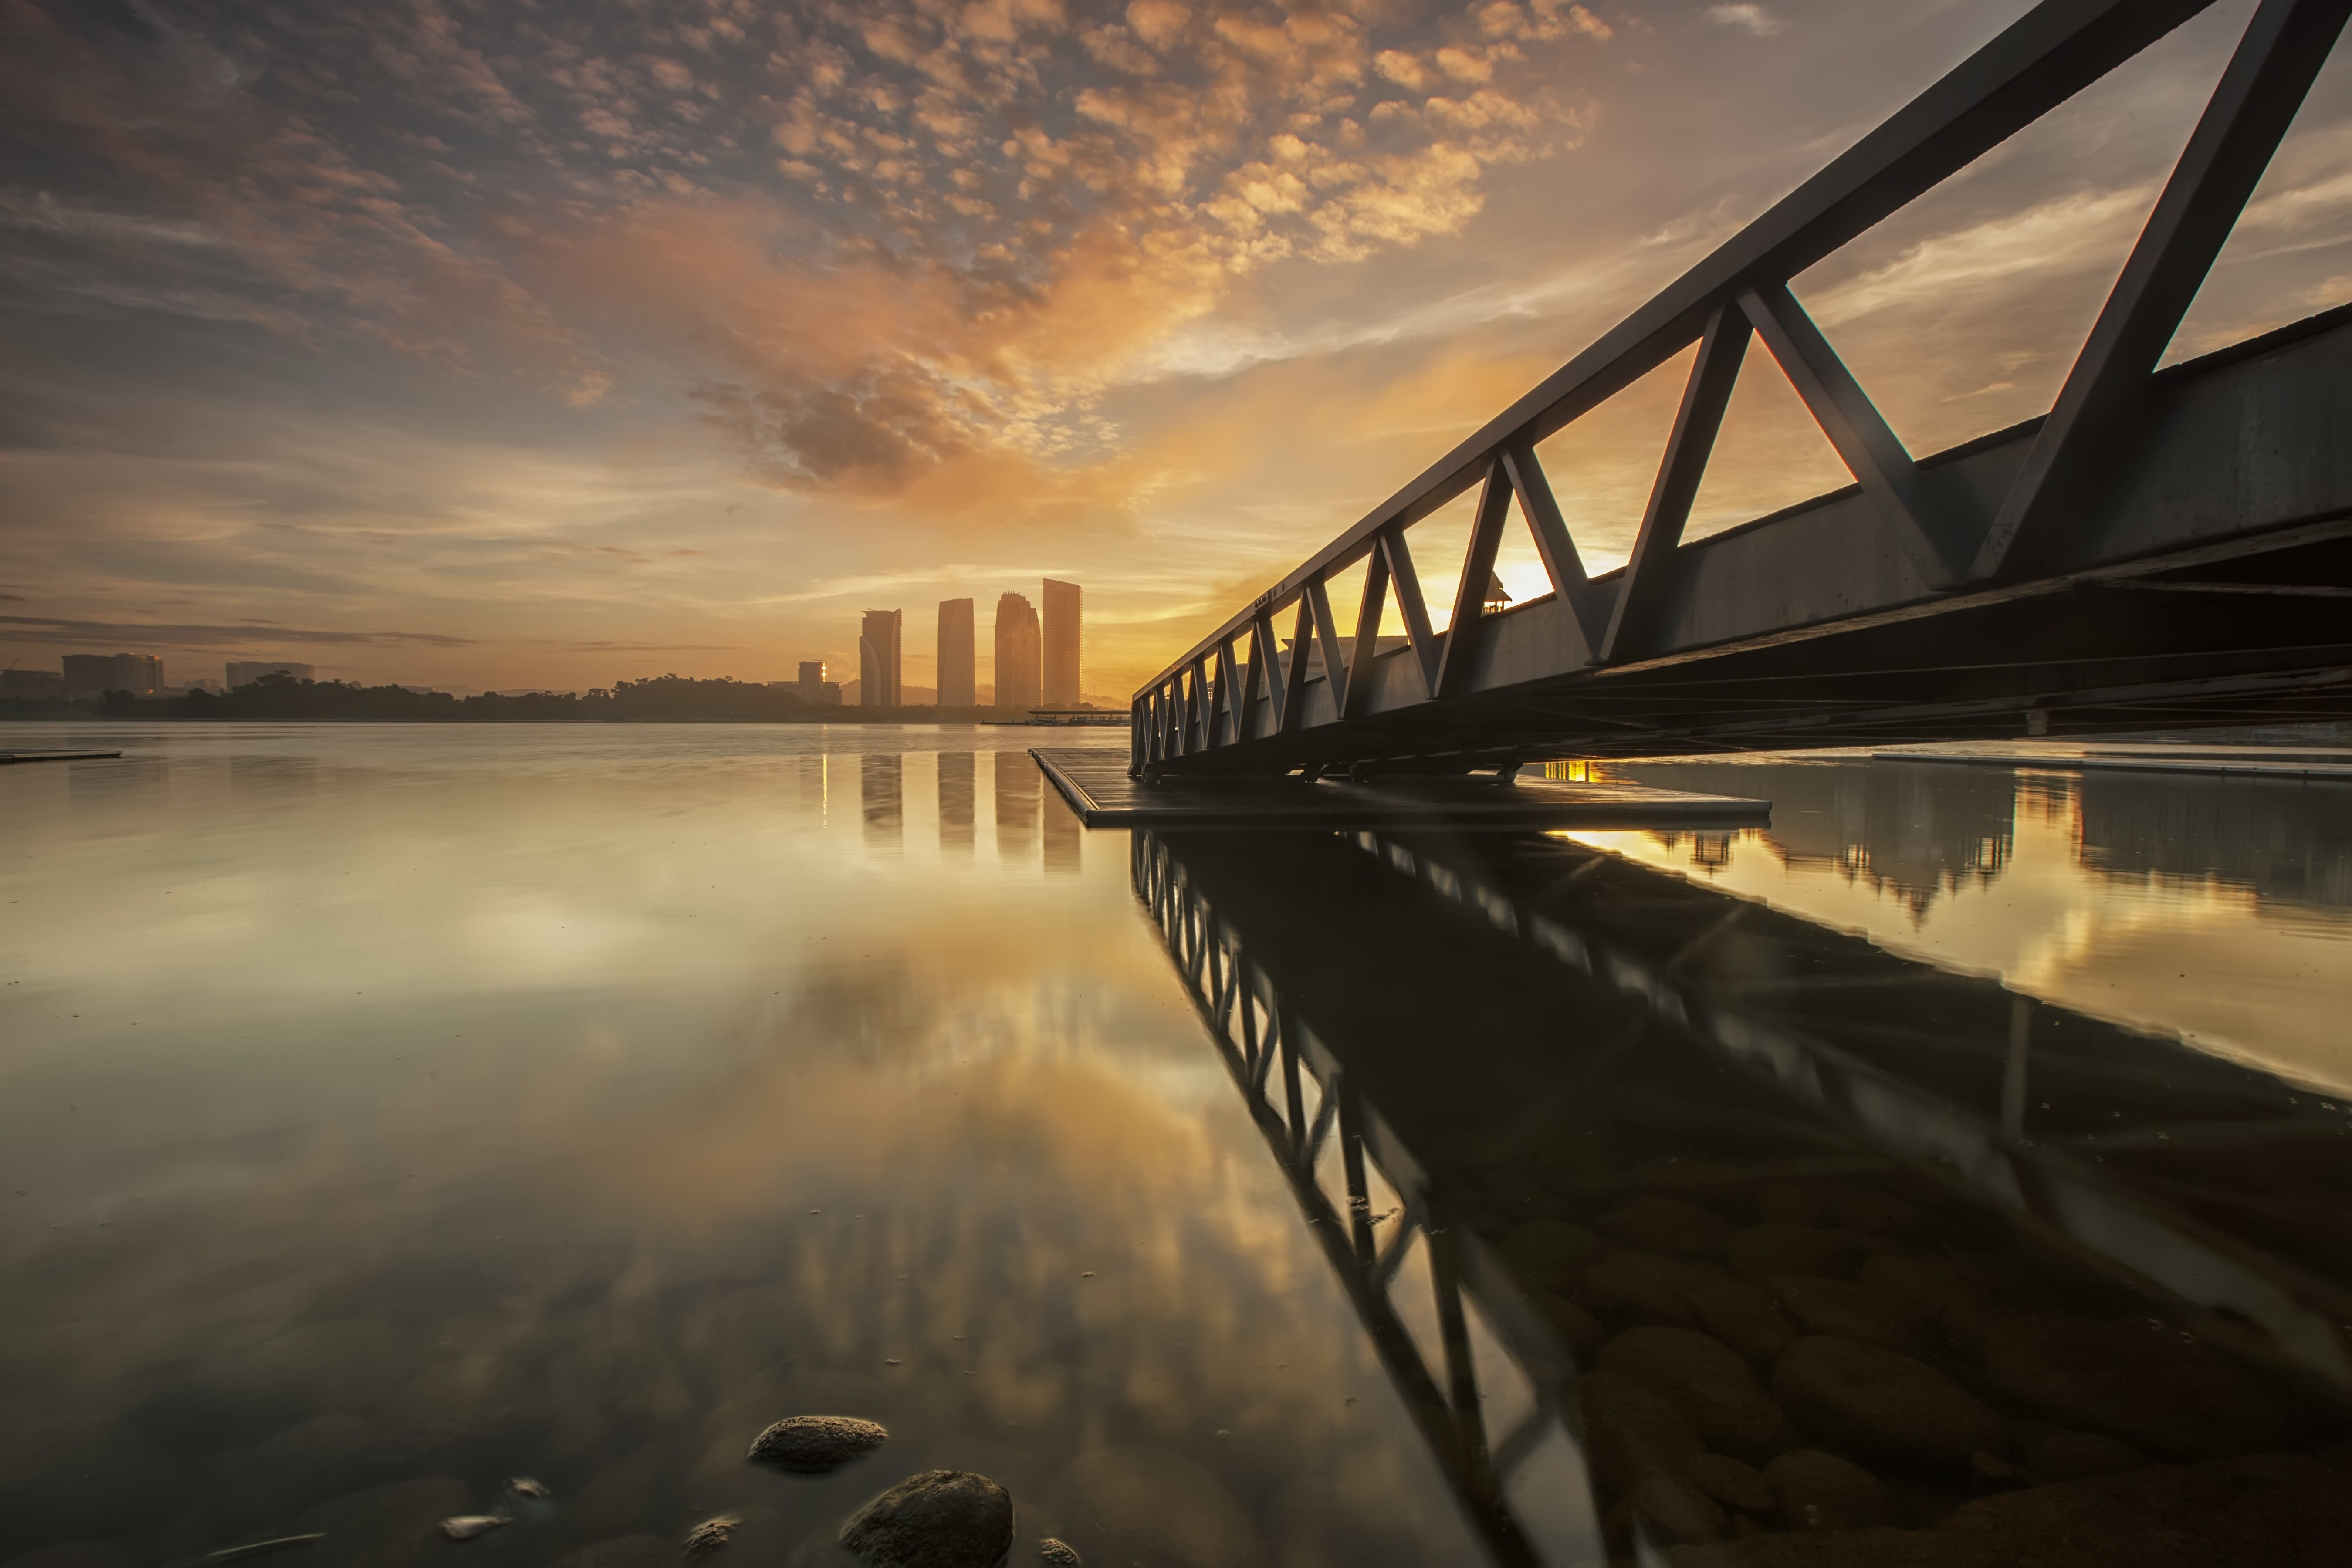 Bridge on Body of Water Near High-rise Building during Golden Hour